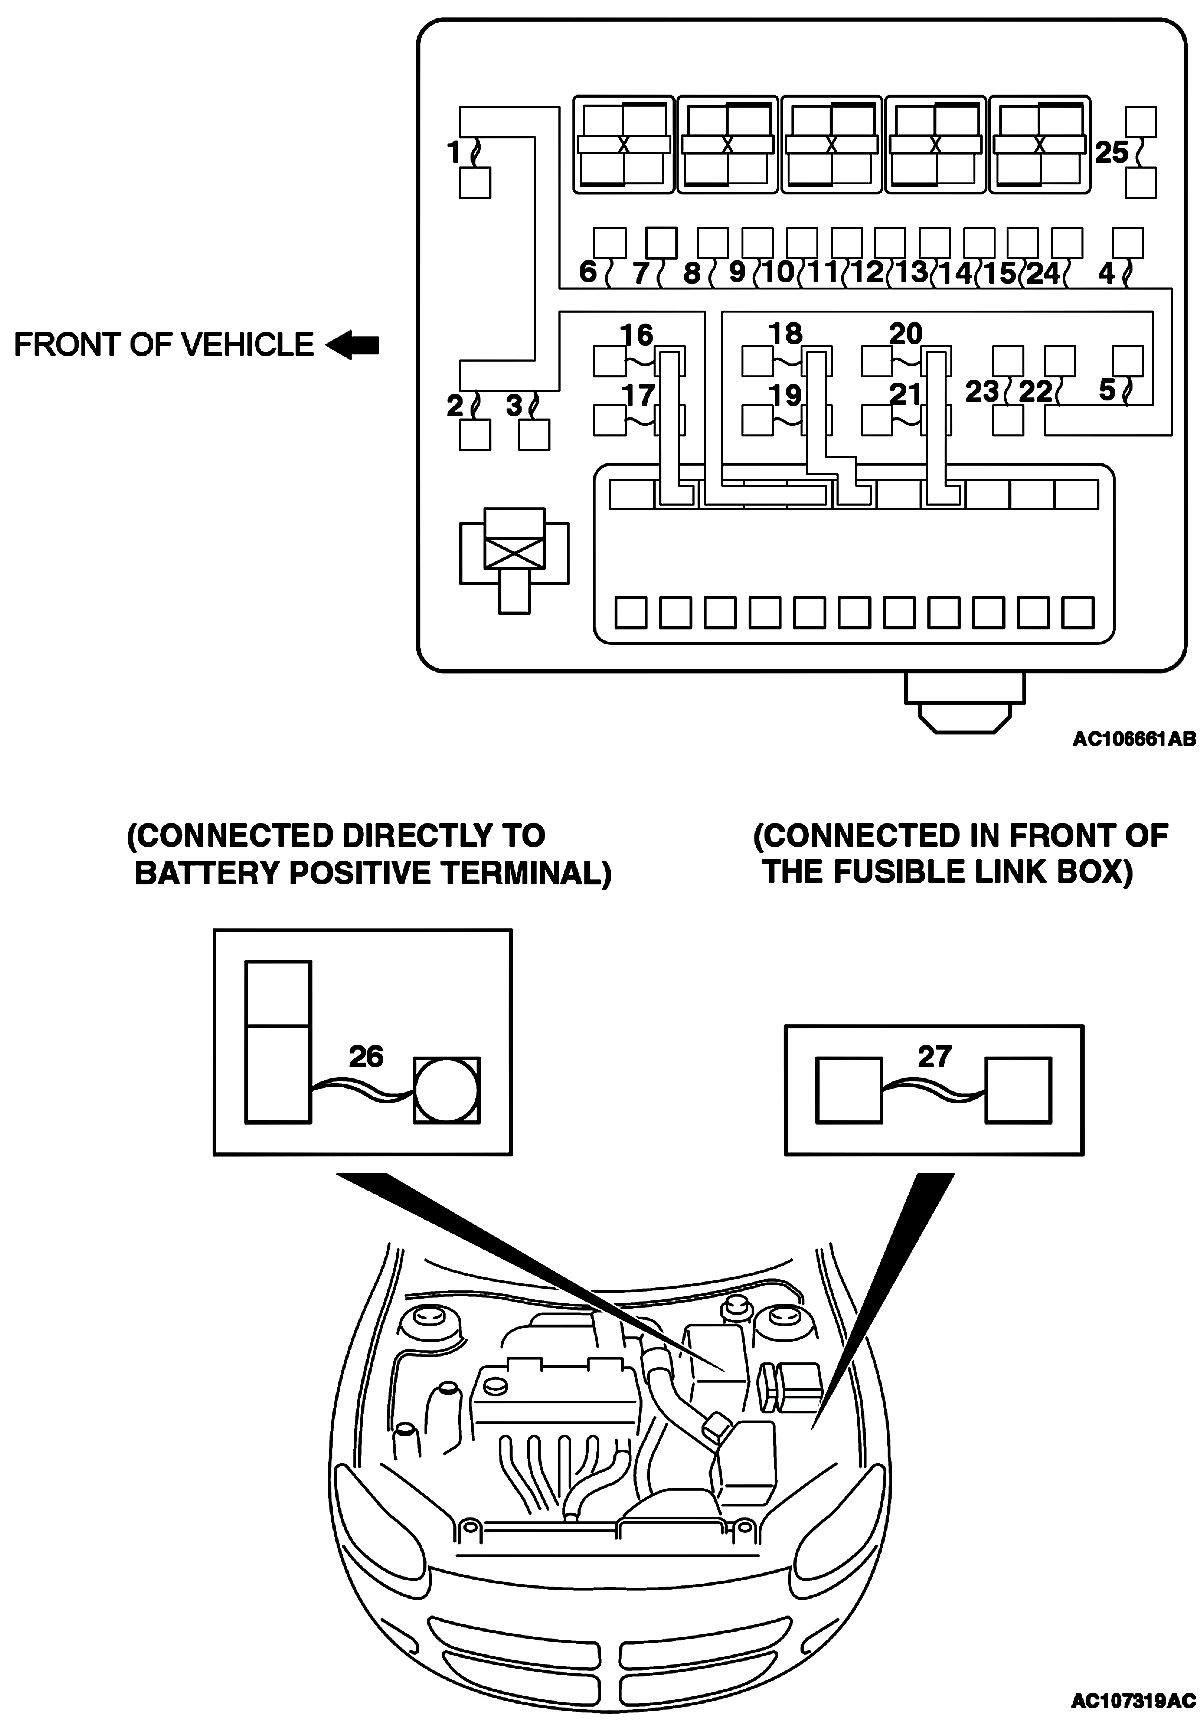 2004 Chrysler Sebring Fuse Box Power Detailed Schematic Diagrams 6 Cyl Diagram Pacifica Fwd